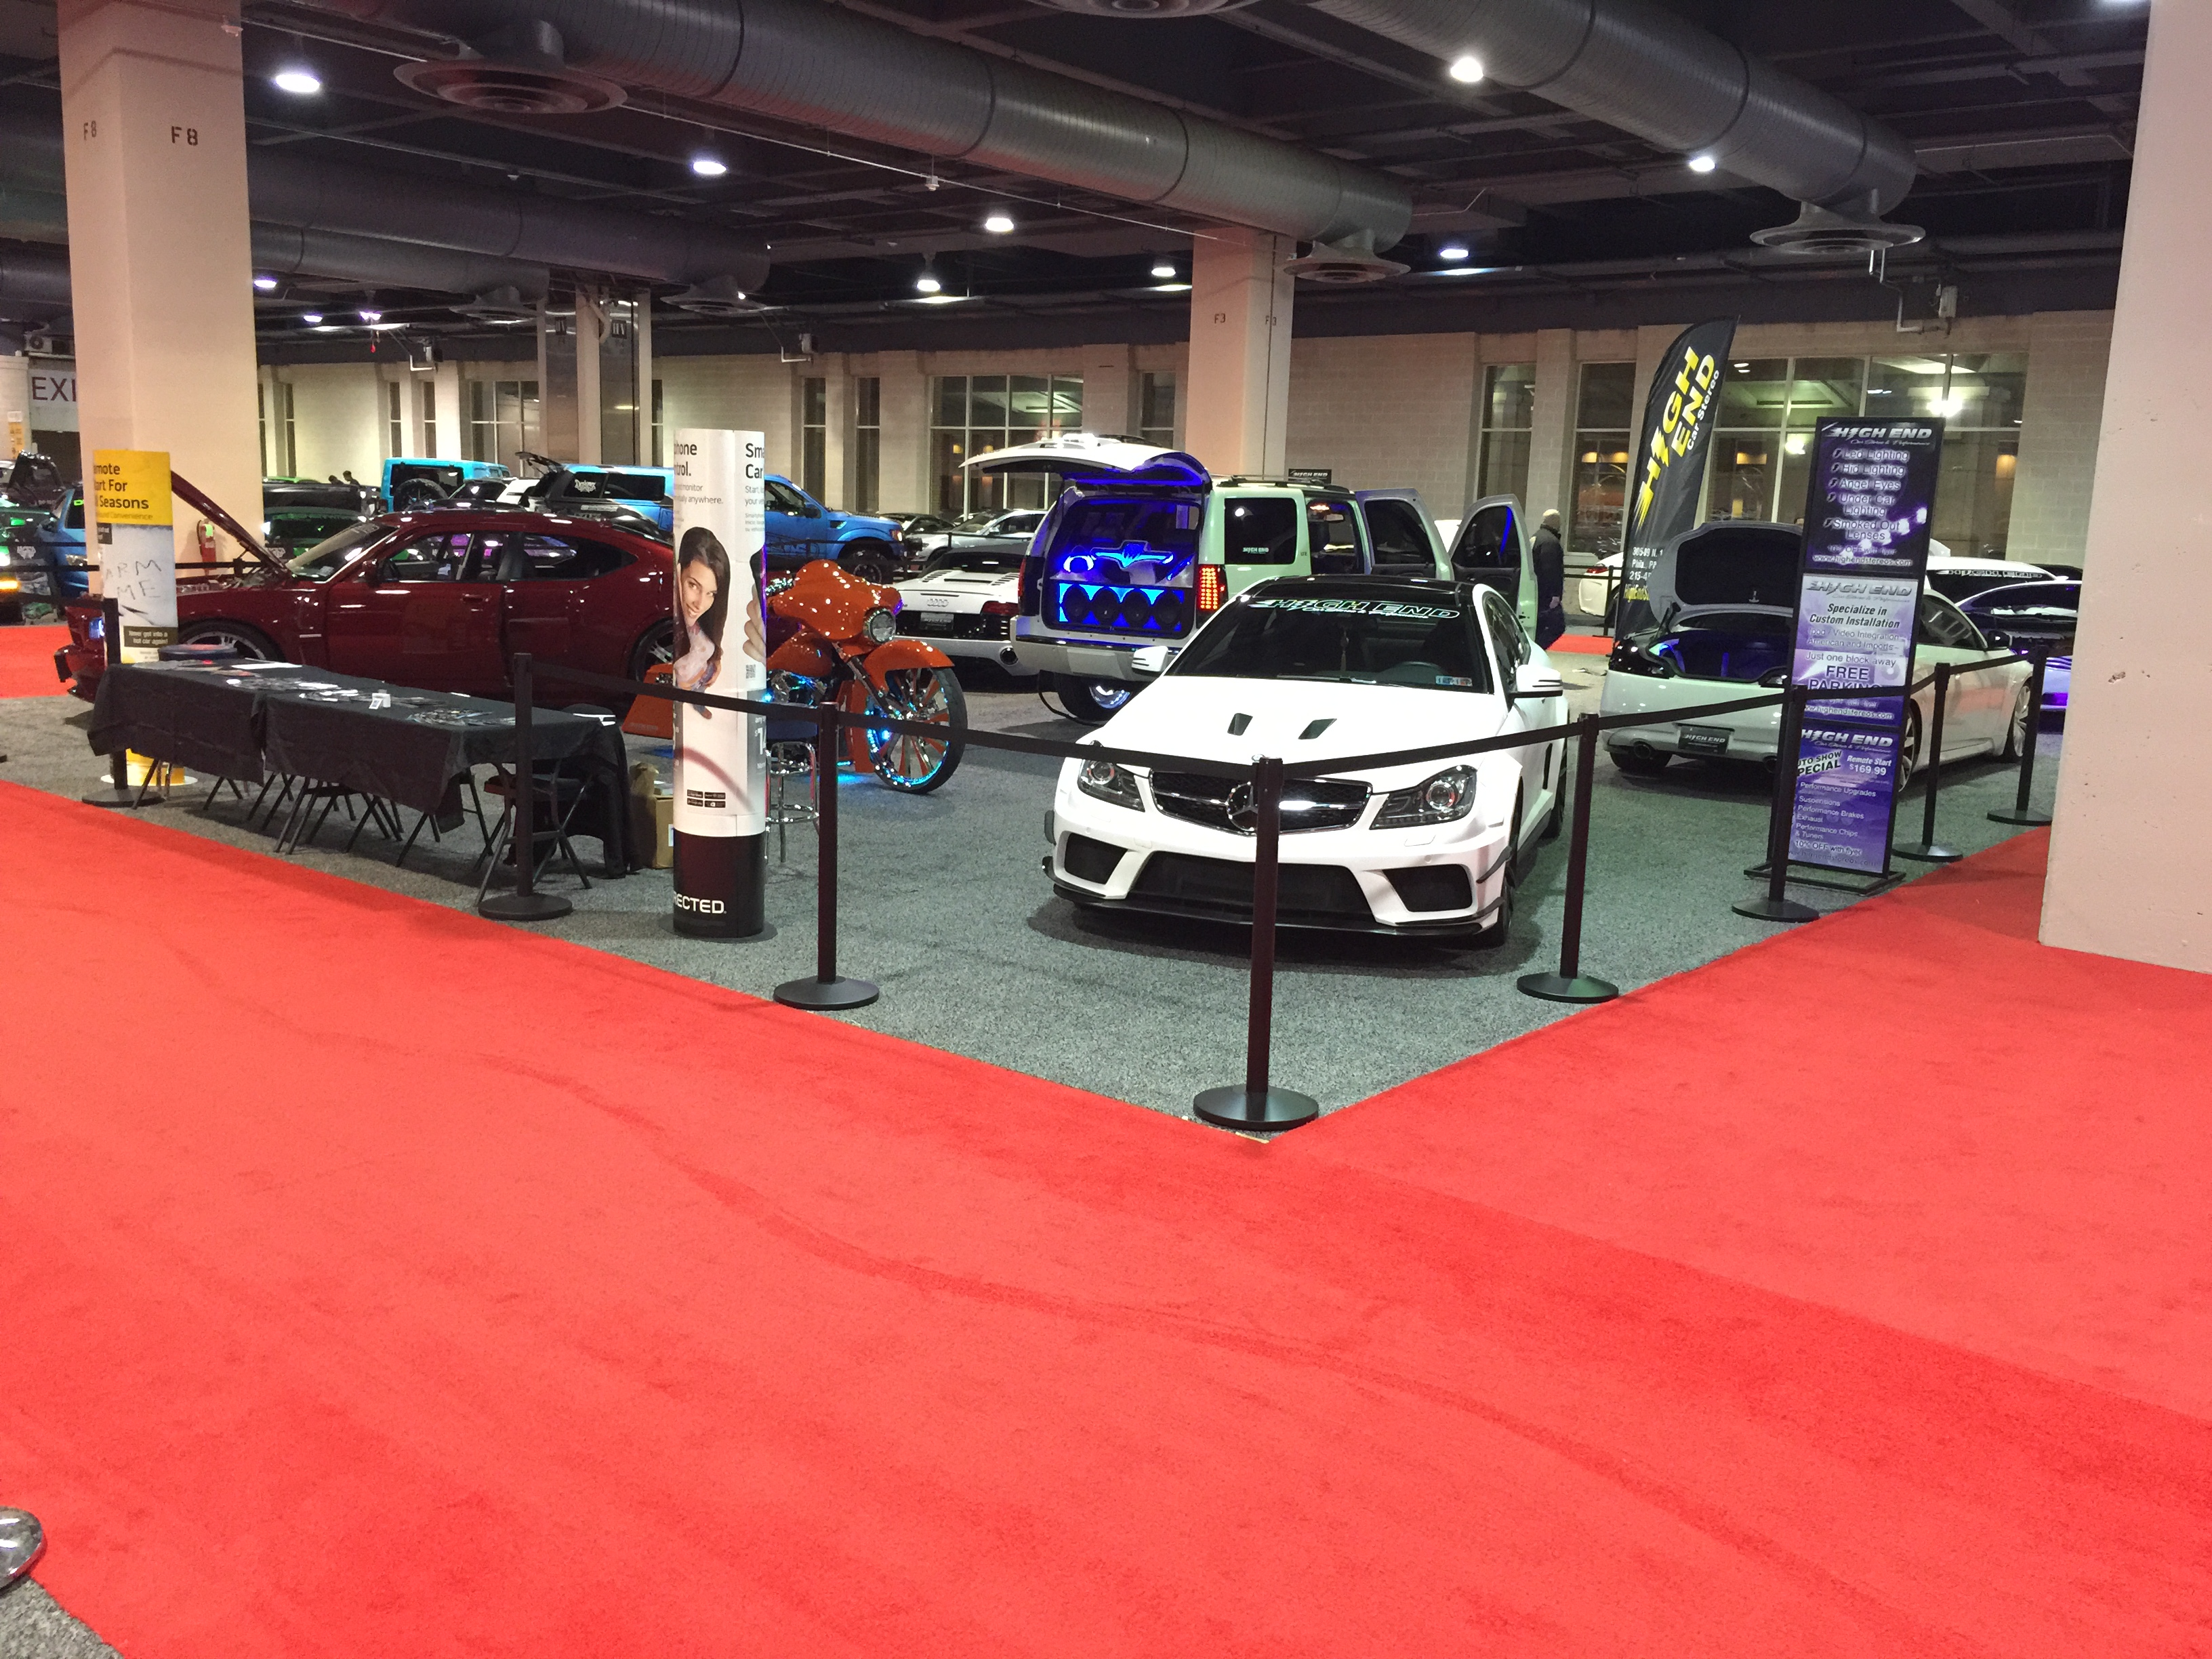 2015 Philly Auto Show Highend Car Stereo Booth High End